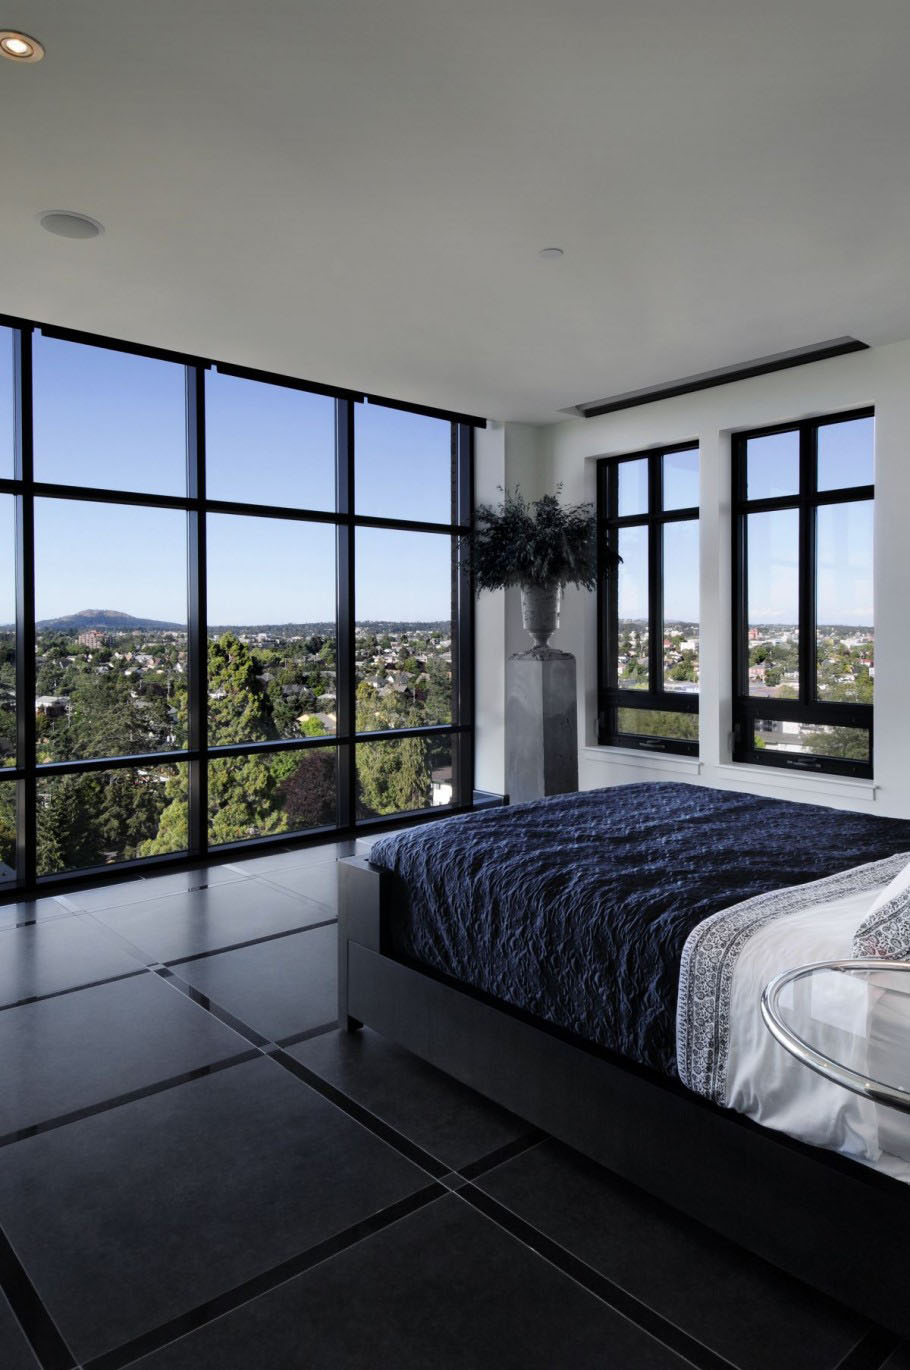 Apartment Interior Design Modern Bedroom